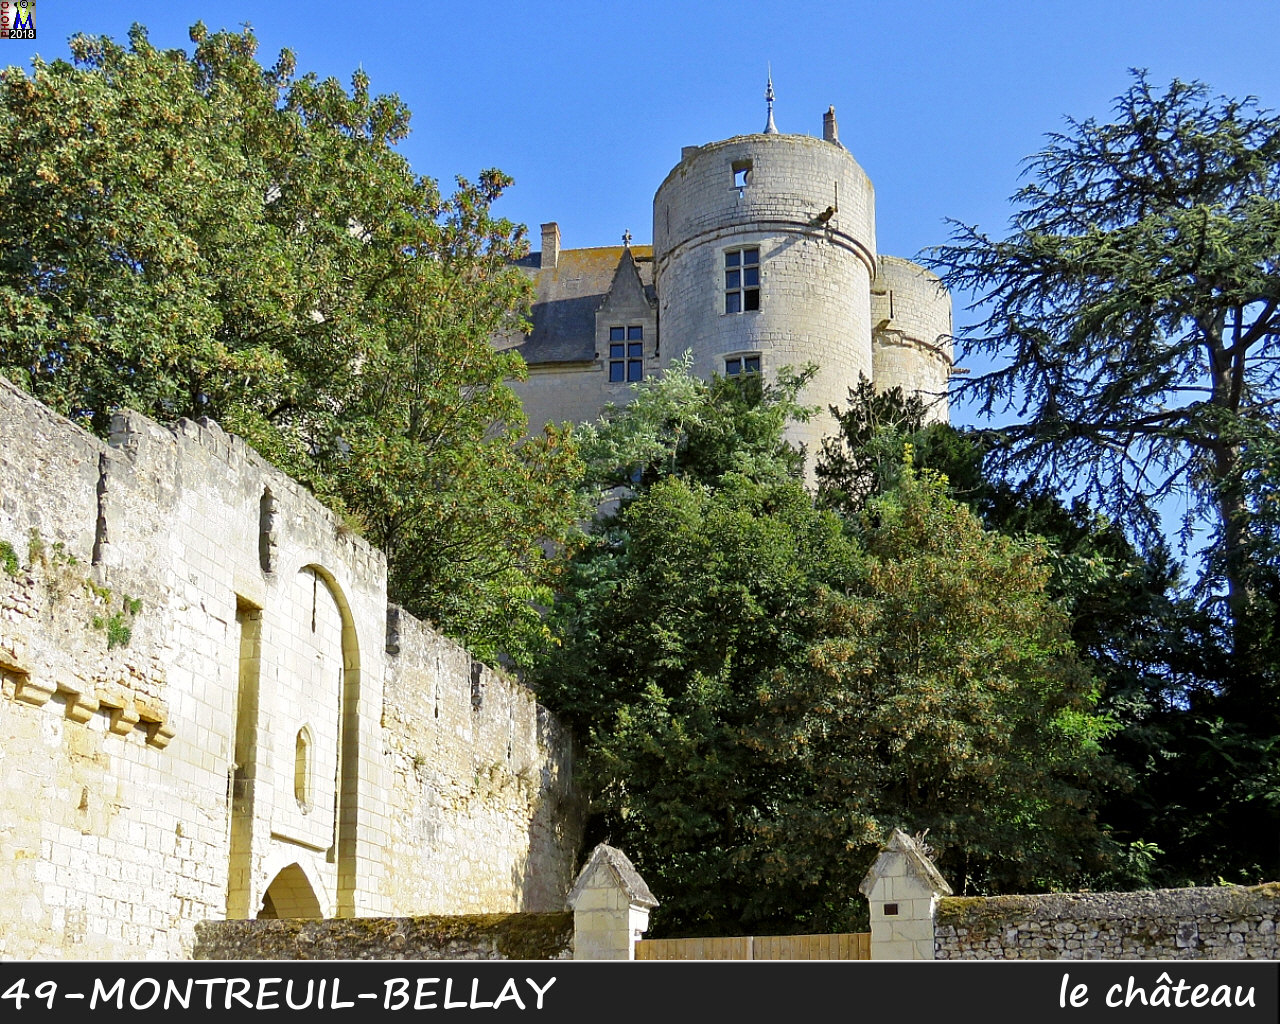 49MONTREUIL-BELLAY_chateau_1042.jpg